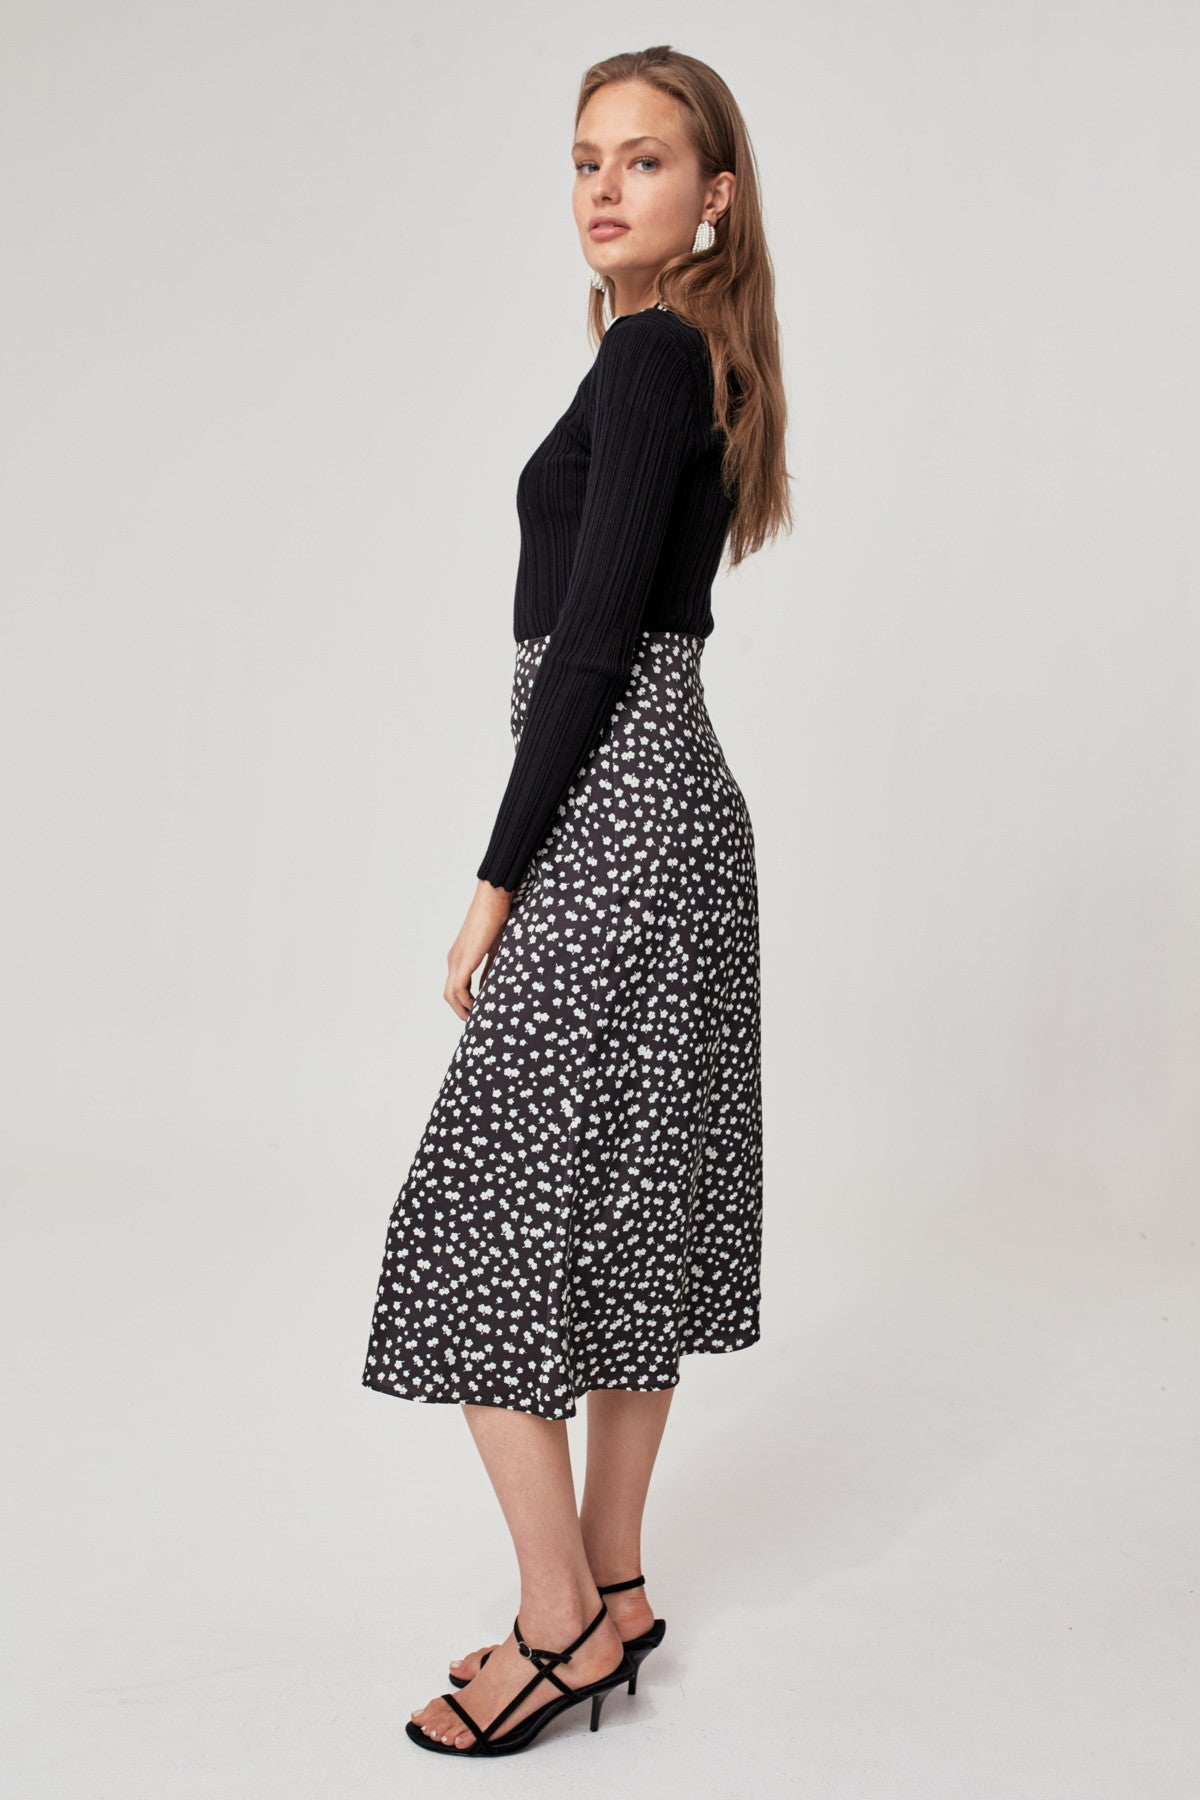 SWAY SKIRT black w cream floral